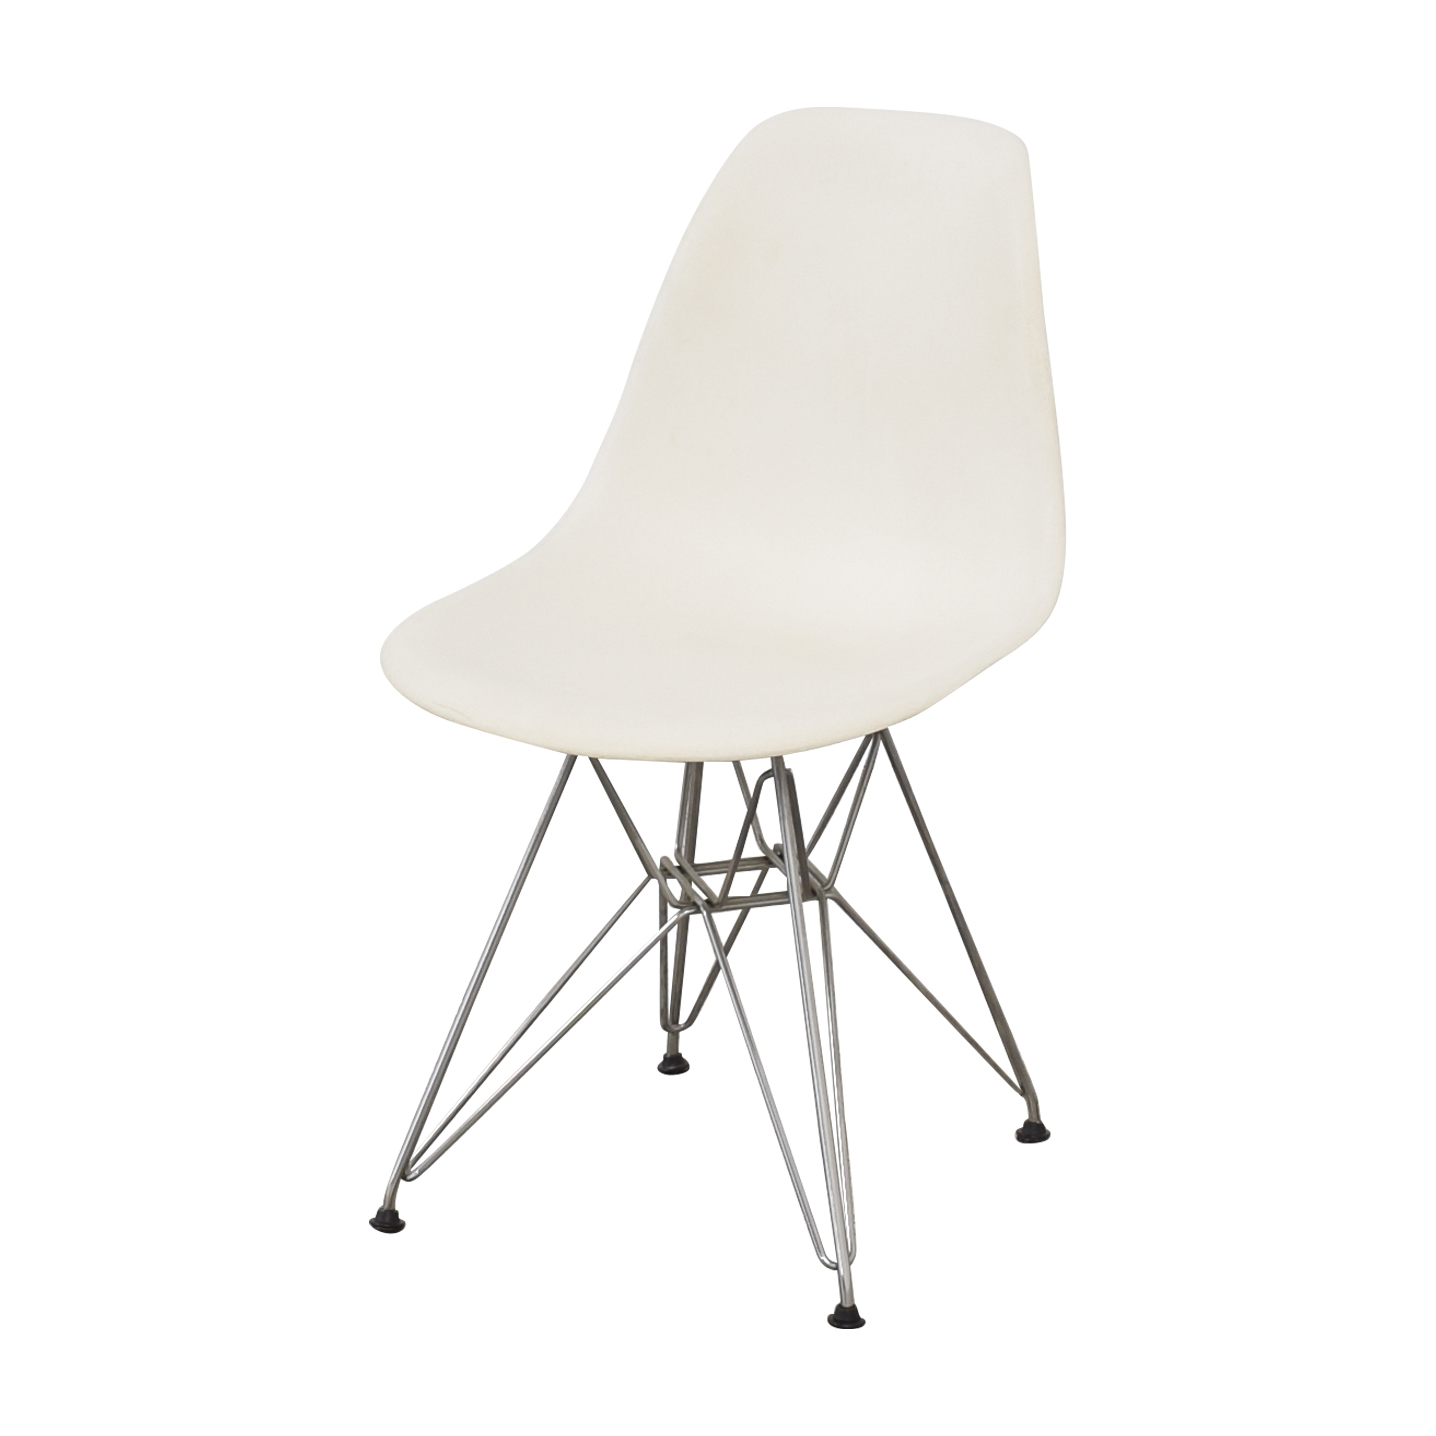 Herman Miller Herman Miller Eames Molded Plastic Dining Chair with Wire Base Dining Chairs